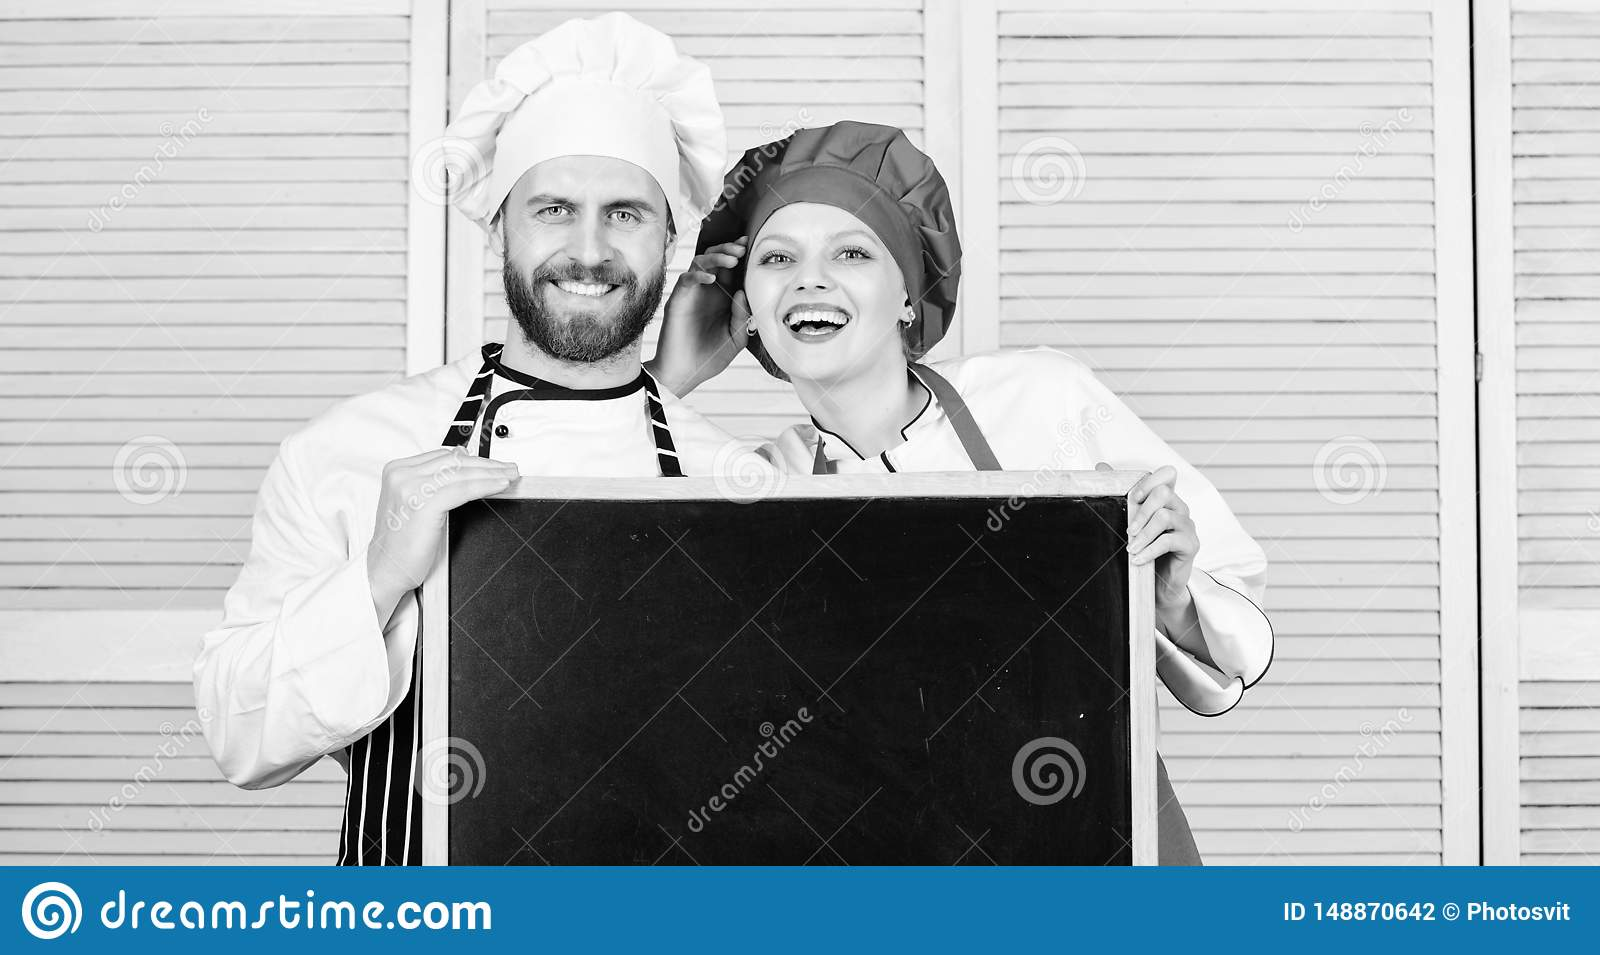 Cooking menu for today. List ingredients cooking dish. Family restaurant. Opening soon. Hiring staff. Woman and man chef